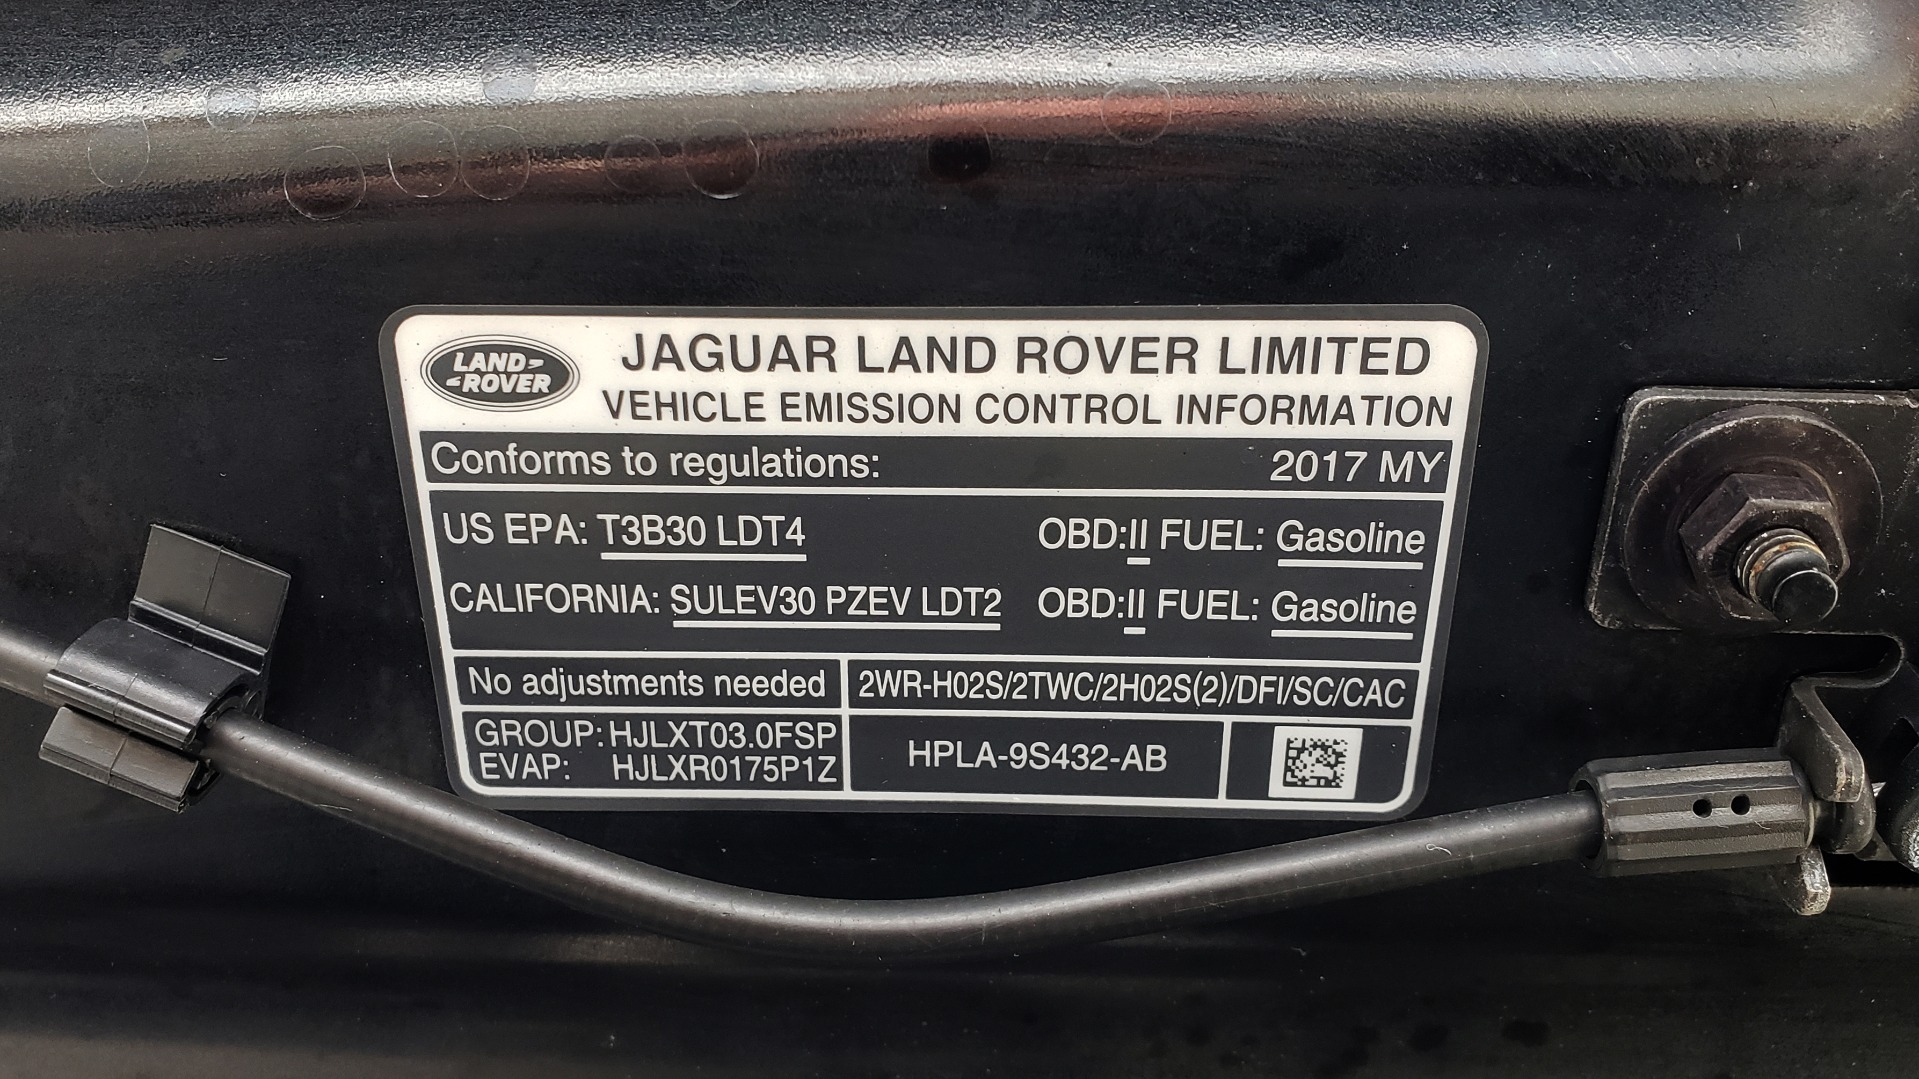 Used 2017 Land Rover RANGE ROVER SPORT HSE DYNAMIC / SC V6 / NAV / MERIDIAN / PANO-ROOF / REARVIEW for sale Sold at Formula Imports in Charlotte NC 28227 14